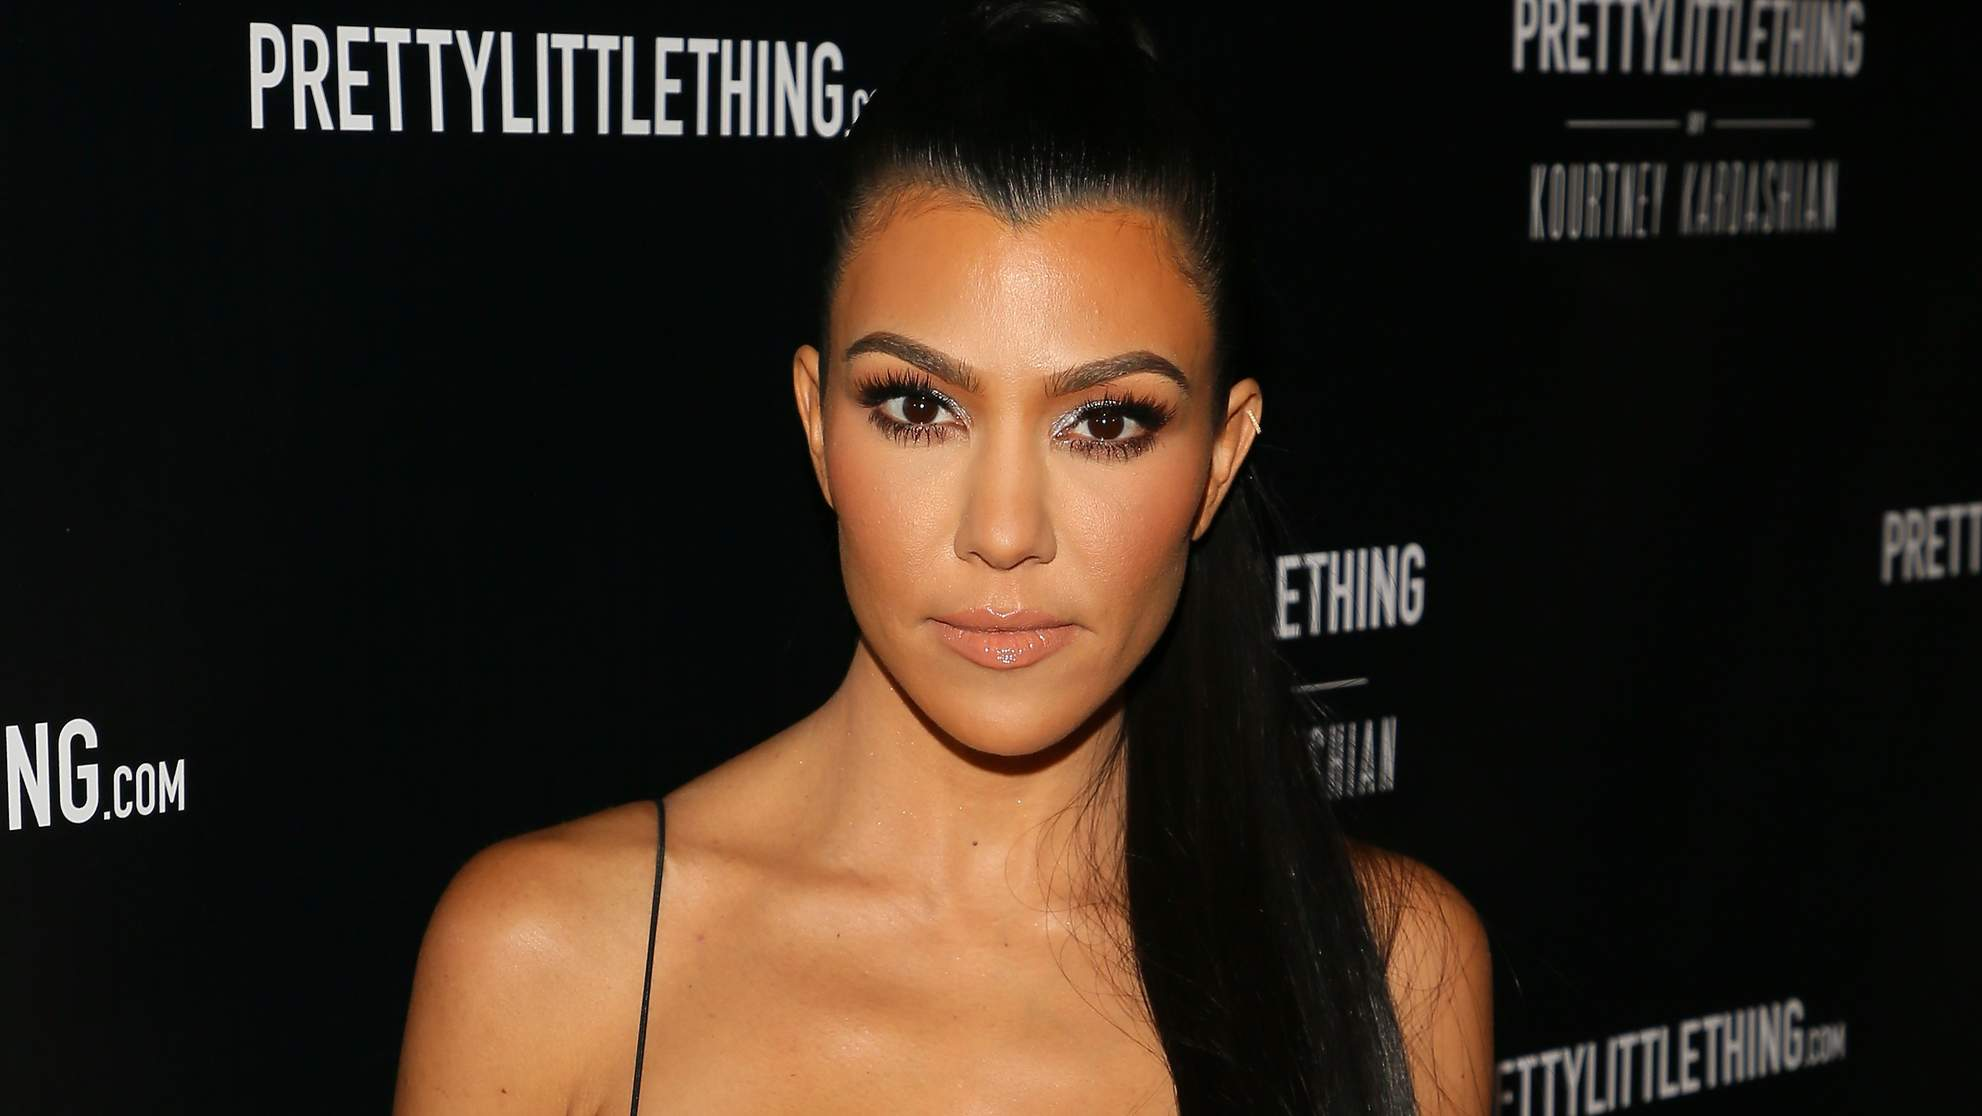 Kourtney Kardashian Weighs 98 Lbs. Here's Why That's Not Necessarily a Bad Thing